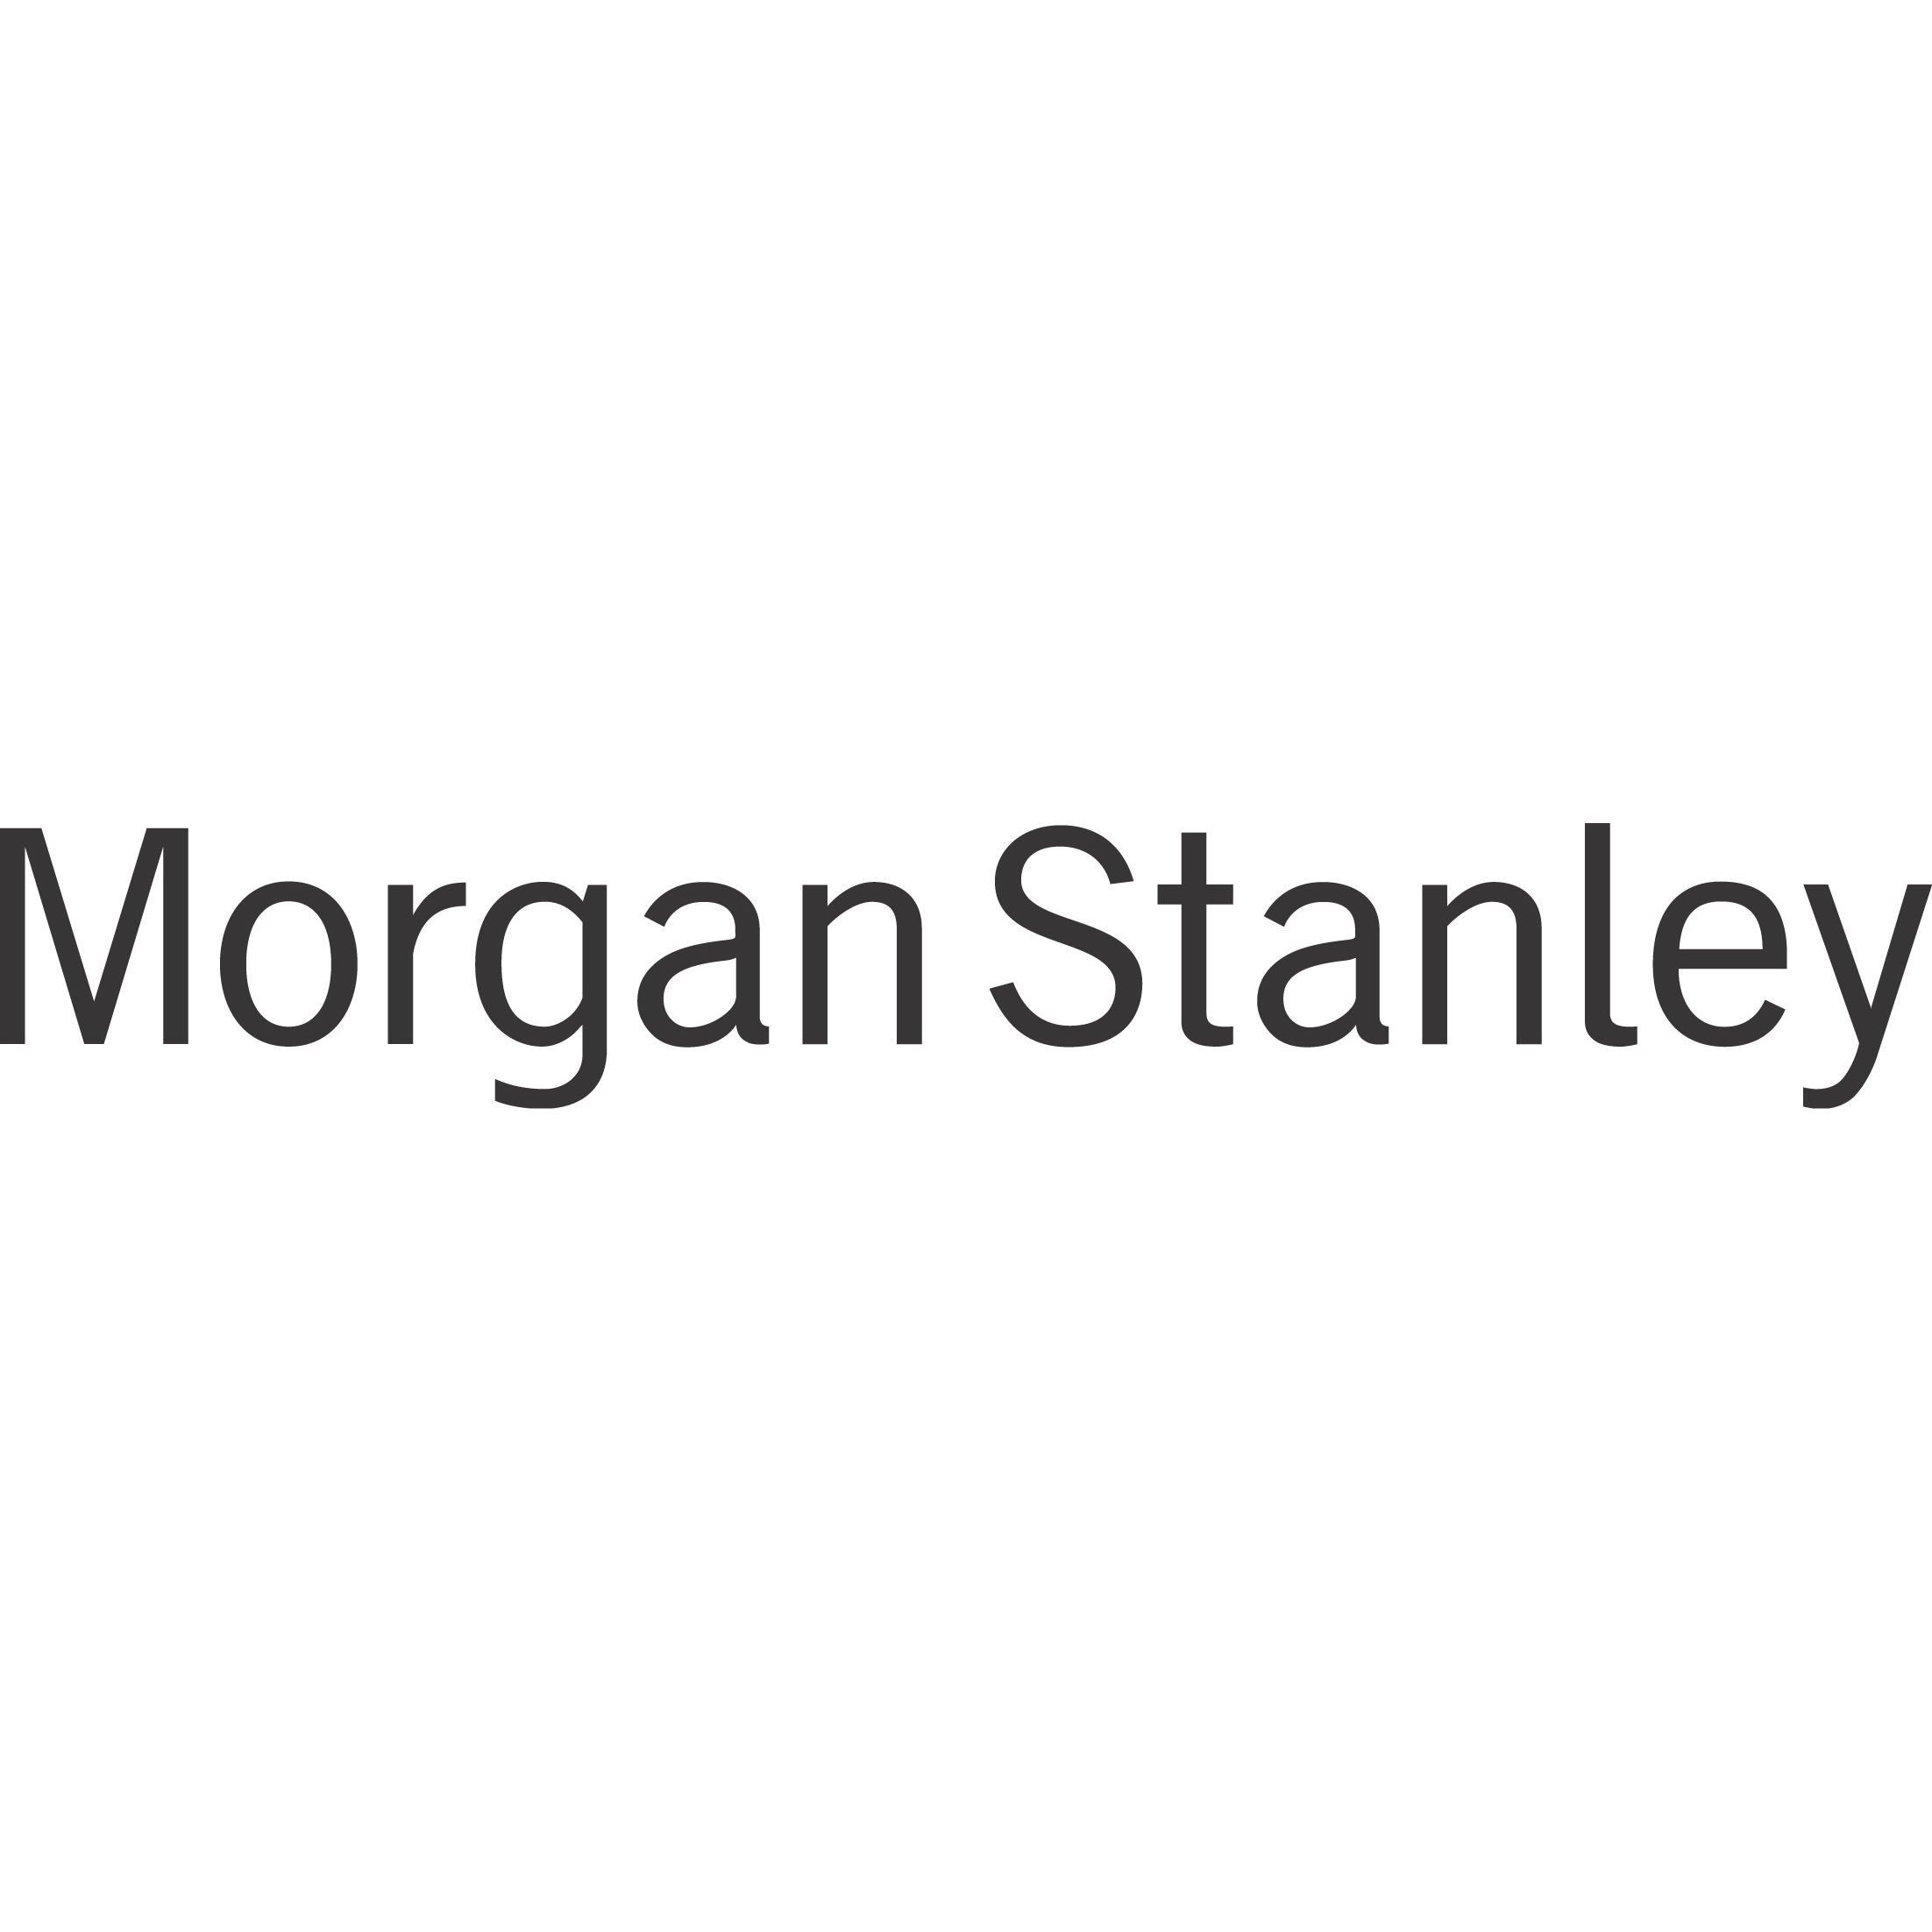 Robert Roast - Morgan Stanley